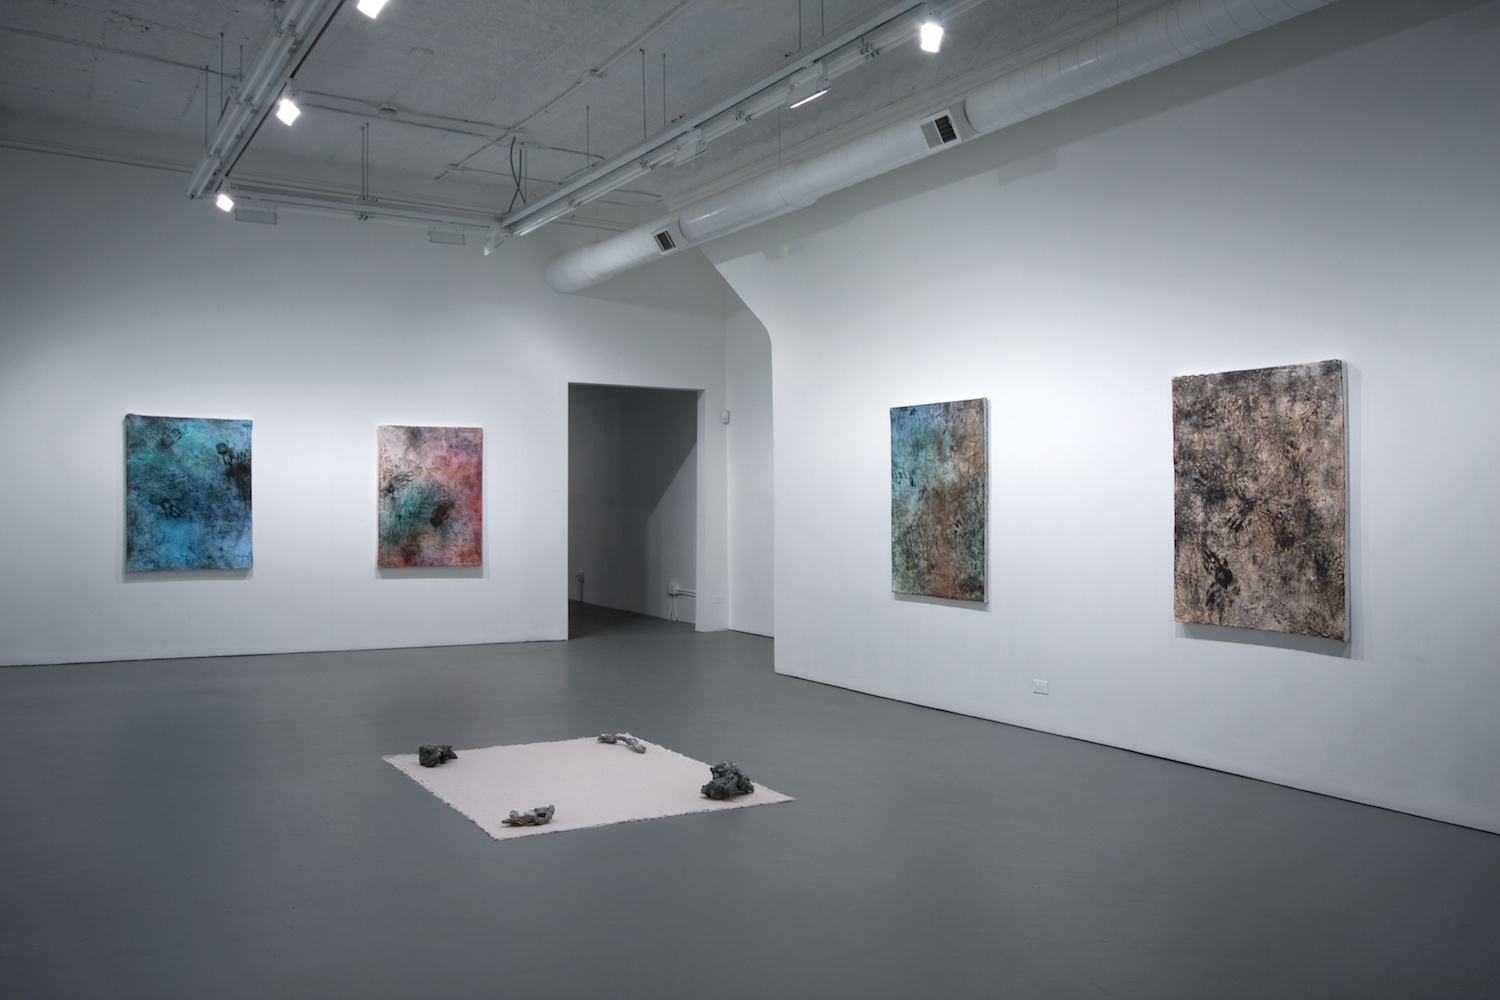 Jay Heikes Subterranean Isle 2011 Shane Campbell Gallery, Chicago Installation View